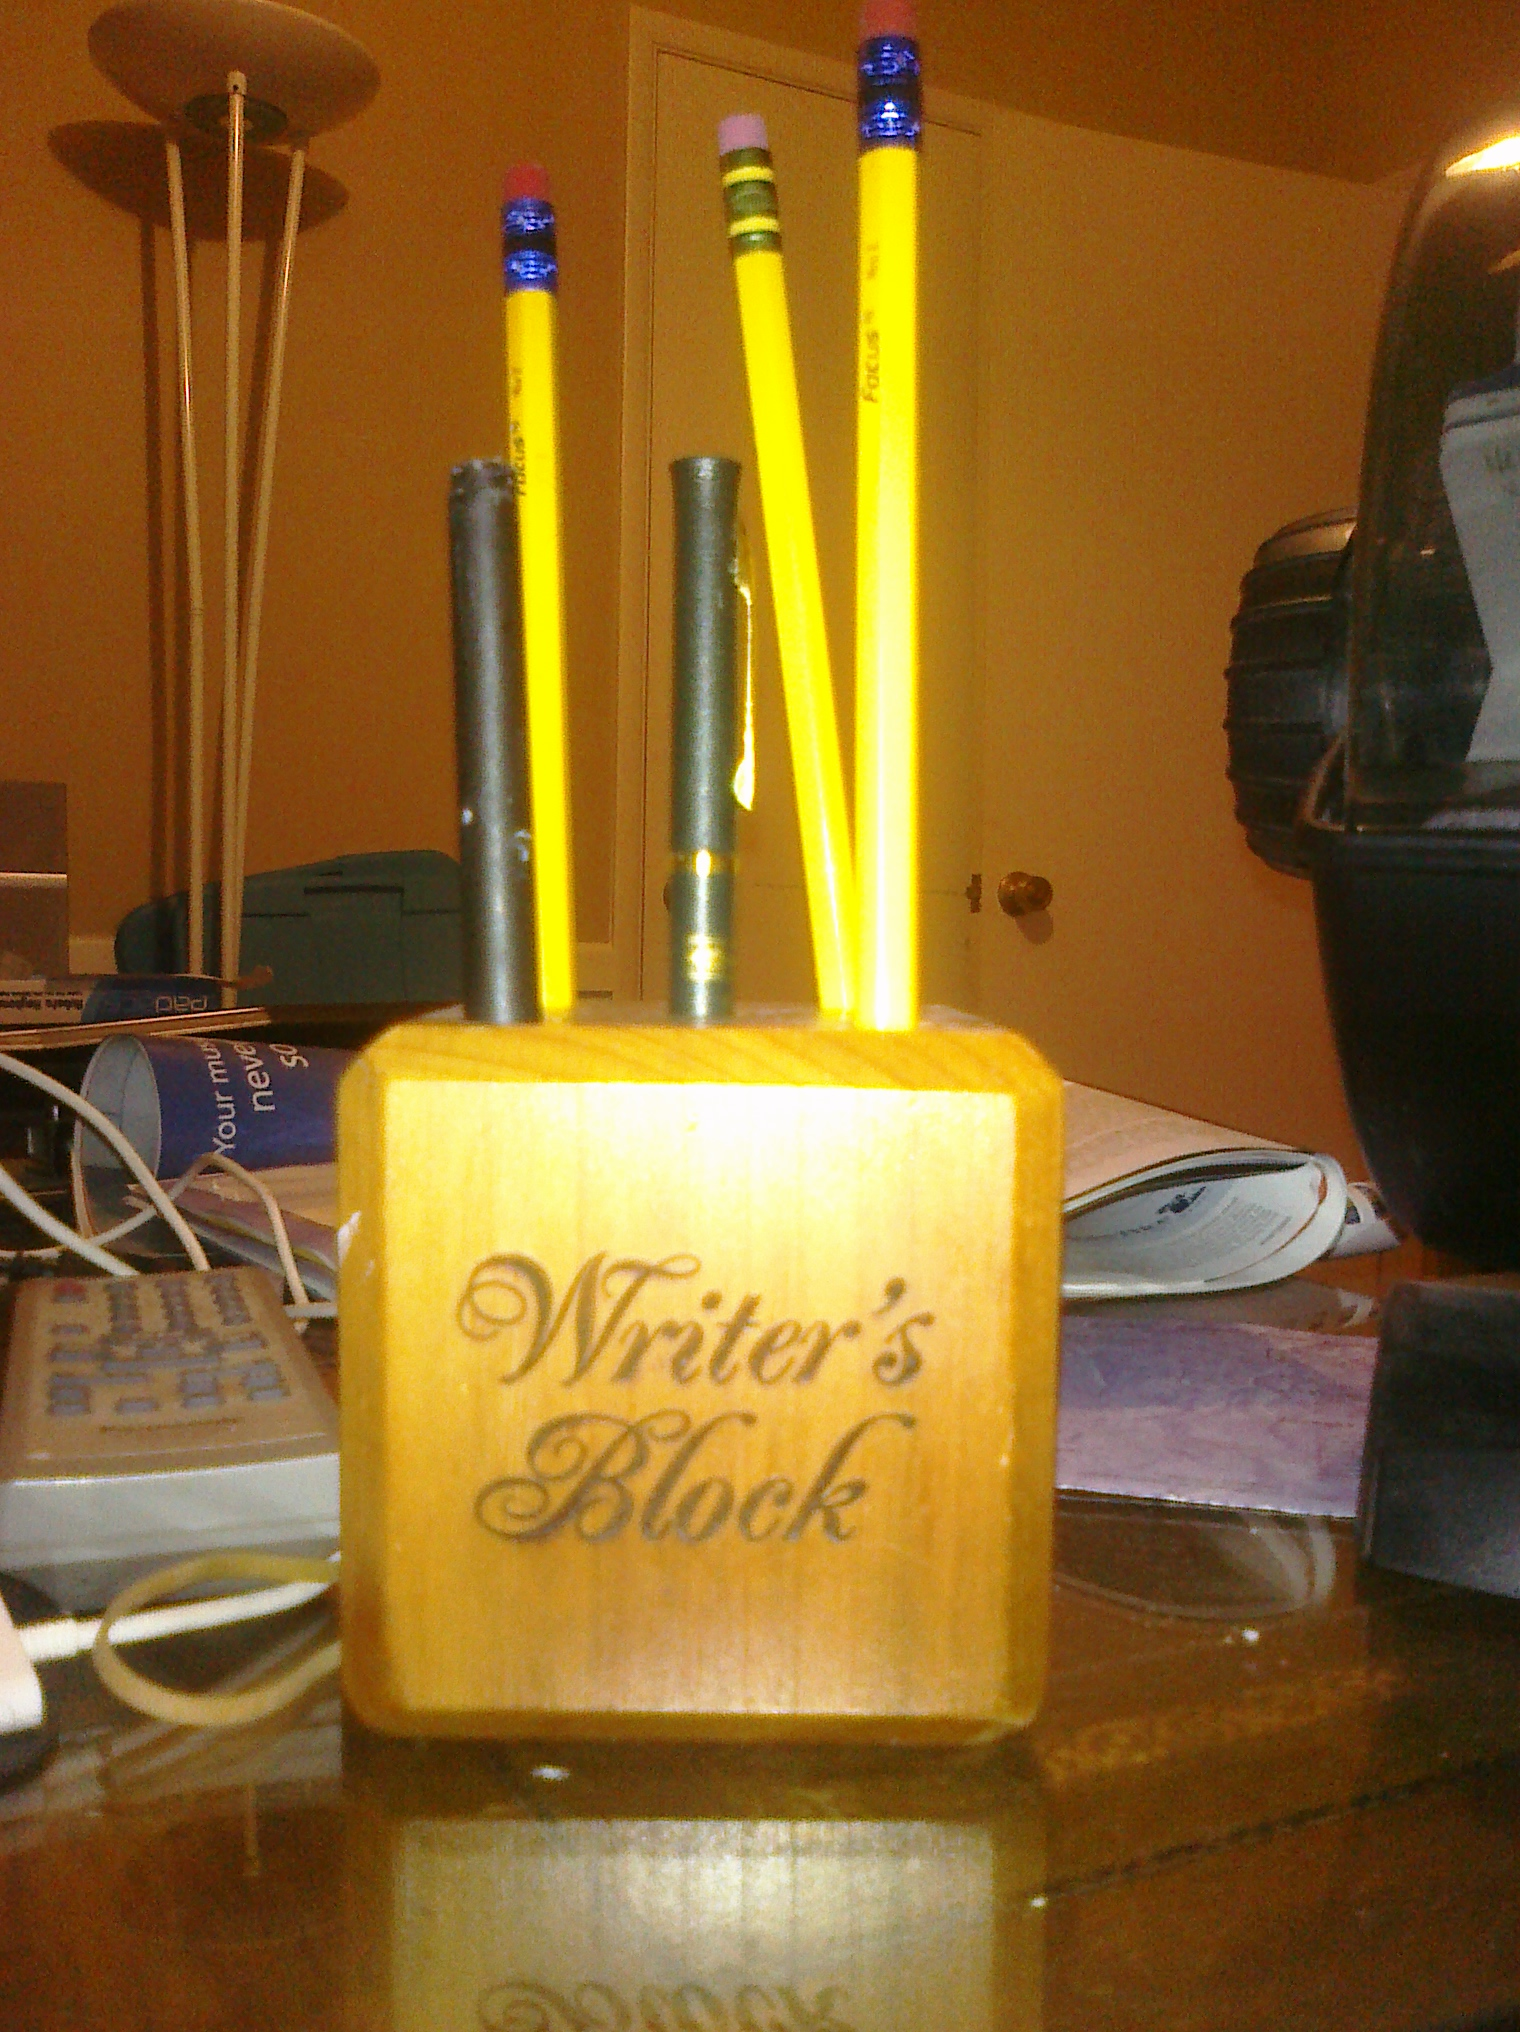 Writer's Block